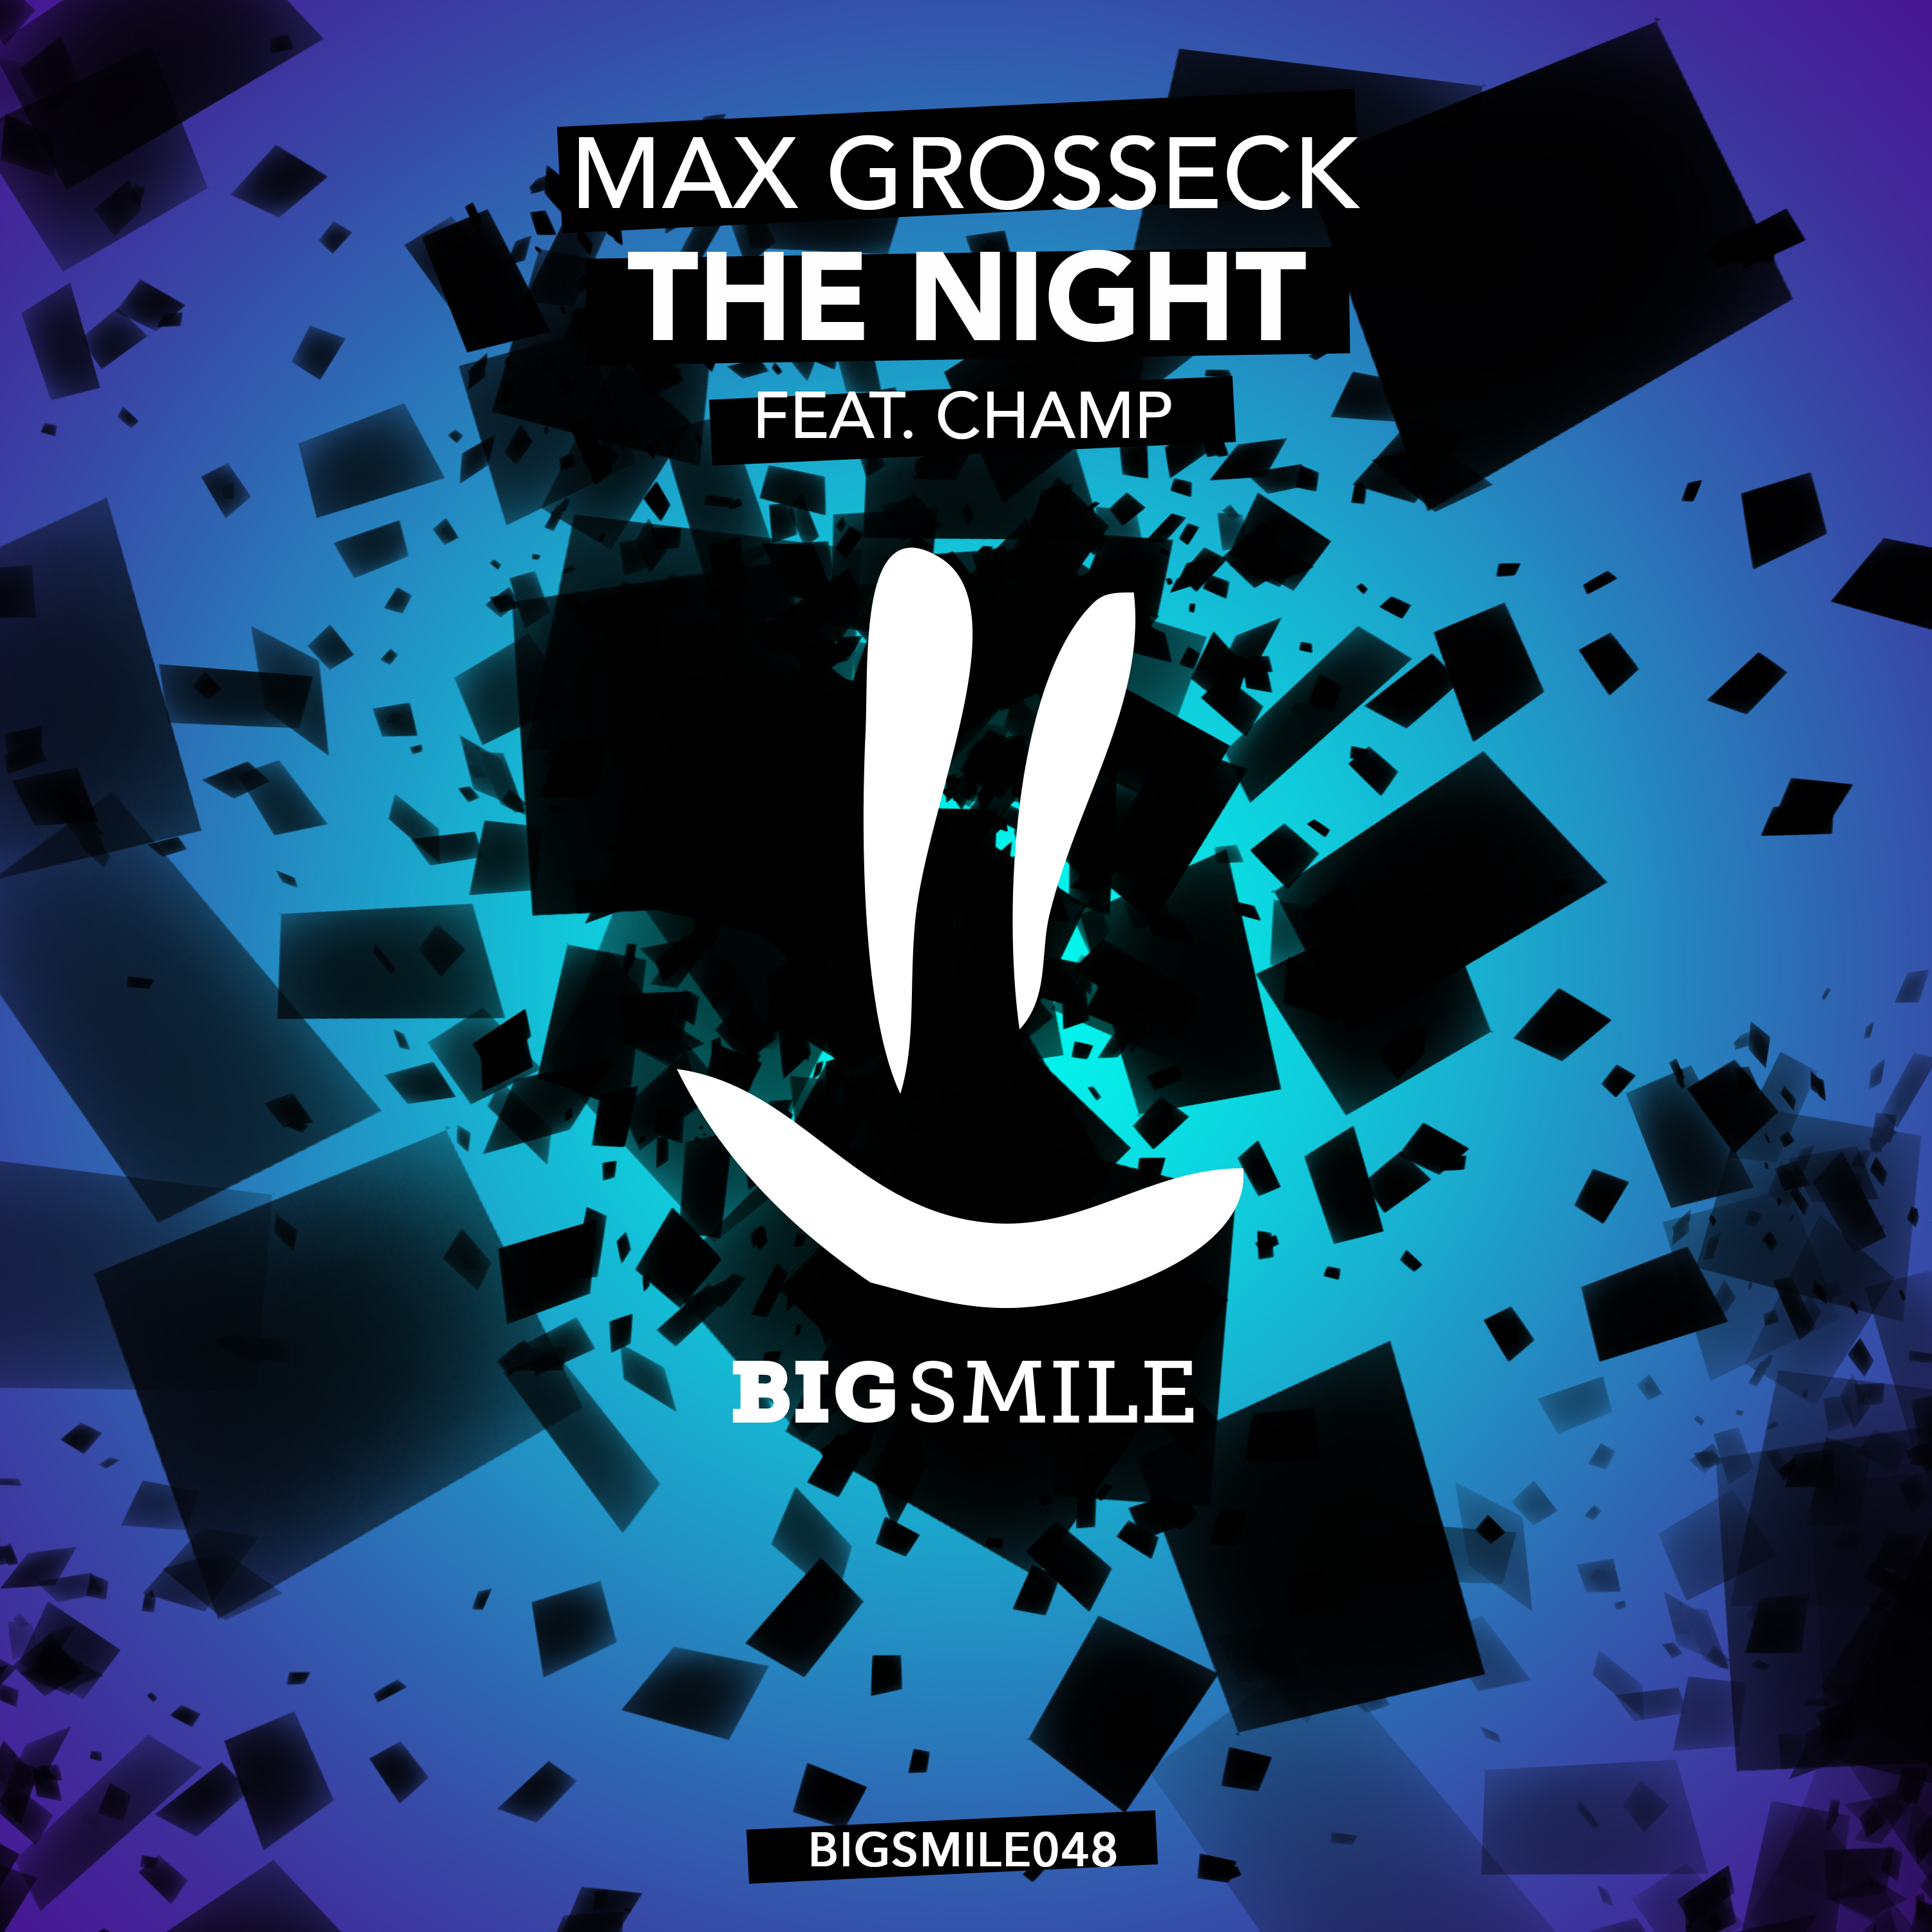 MAX GROSSECK FEAT. CHAMP-The Night